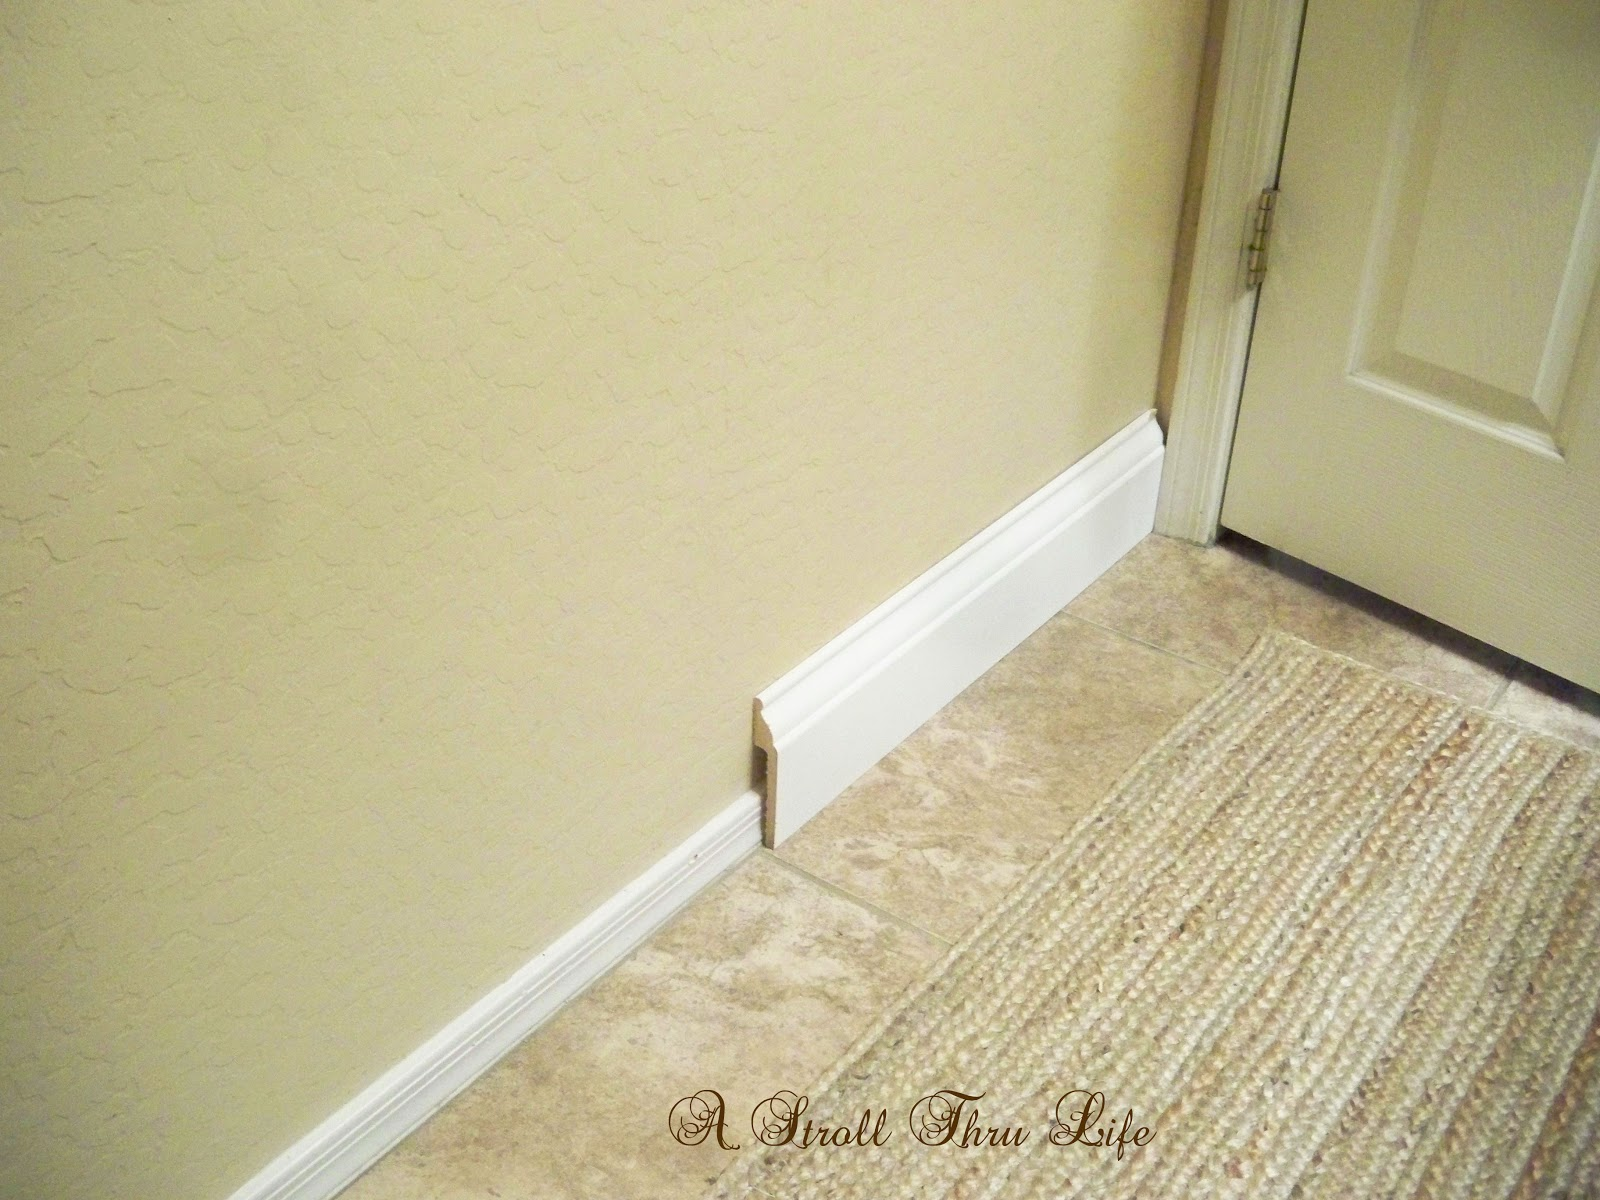 A Stroll Thru Life: Install Wide Baseboard Molding Over